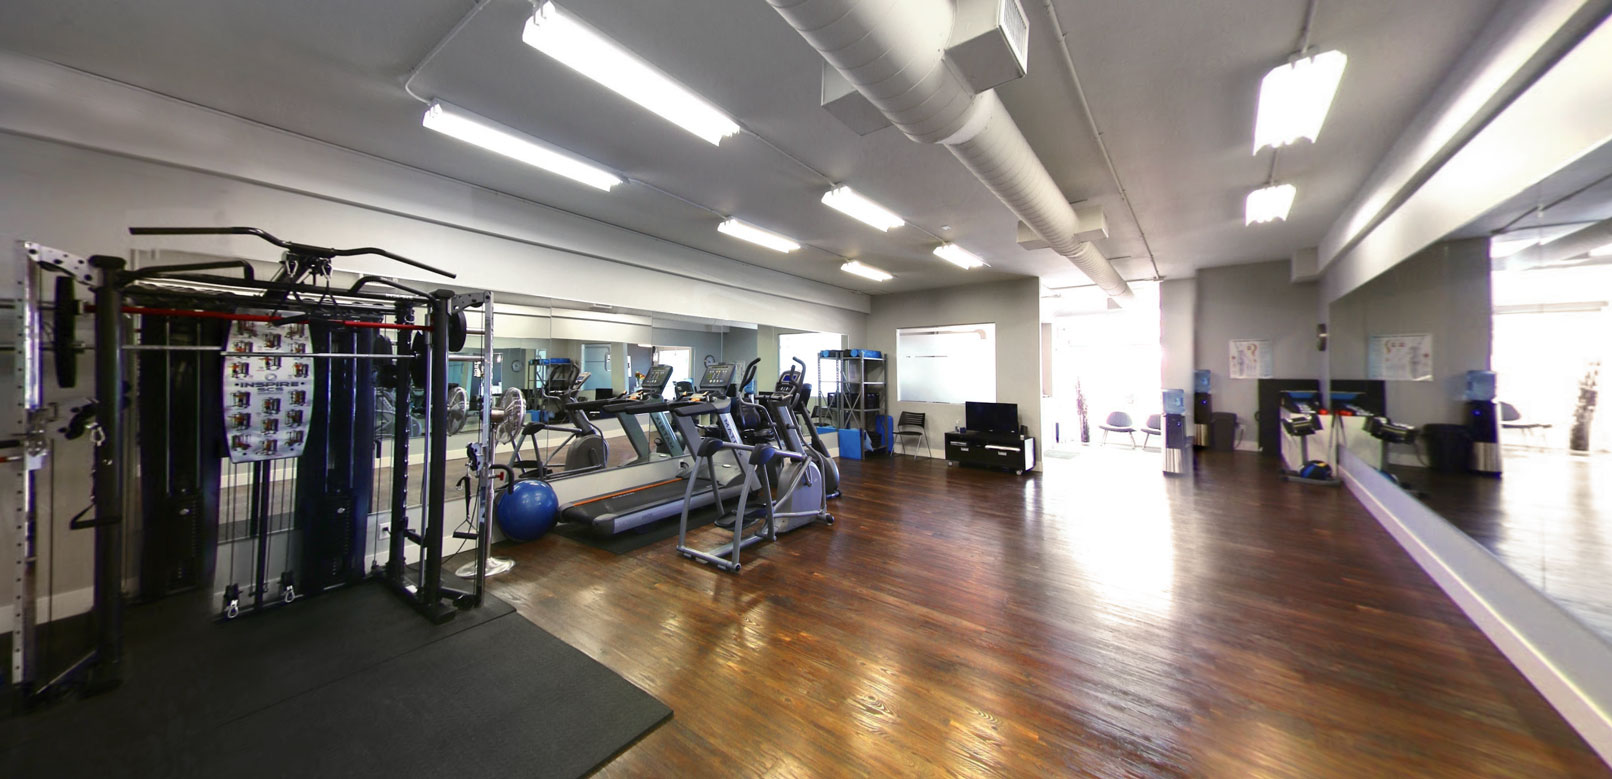 kinesiology studio gym at North 49 physiotherapy